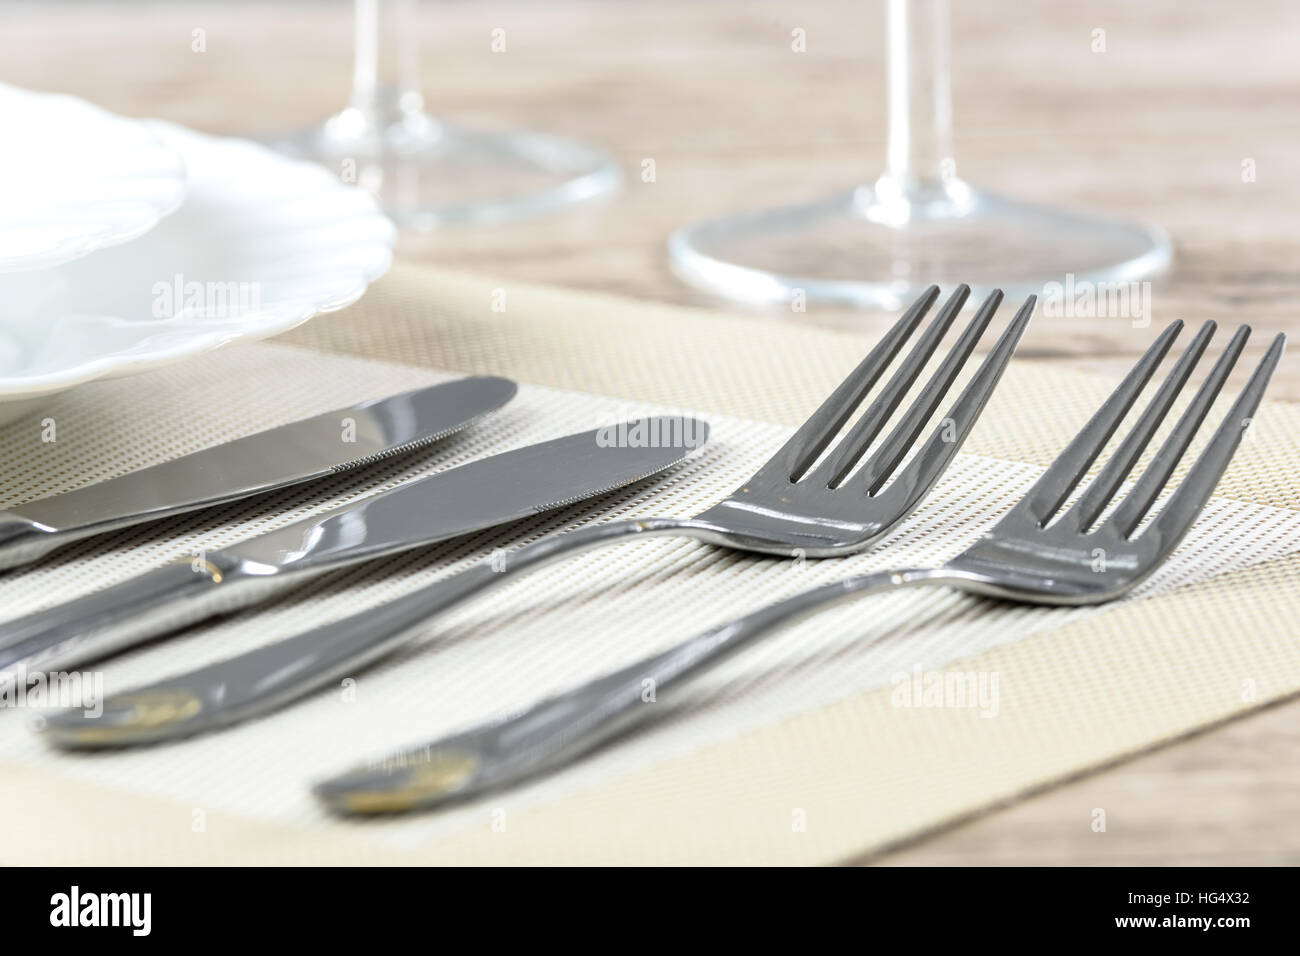 Elegant restaurant table setting with plates cutlery and stemware on a wooden table & Elegant restaurant table setting with plates cutlery and stemware on ...